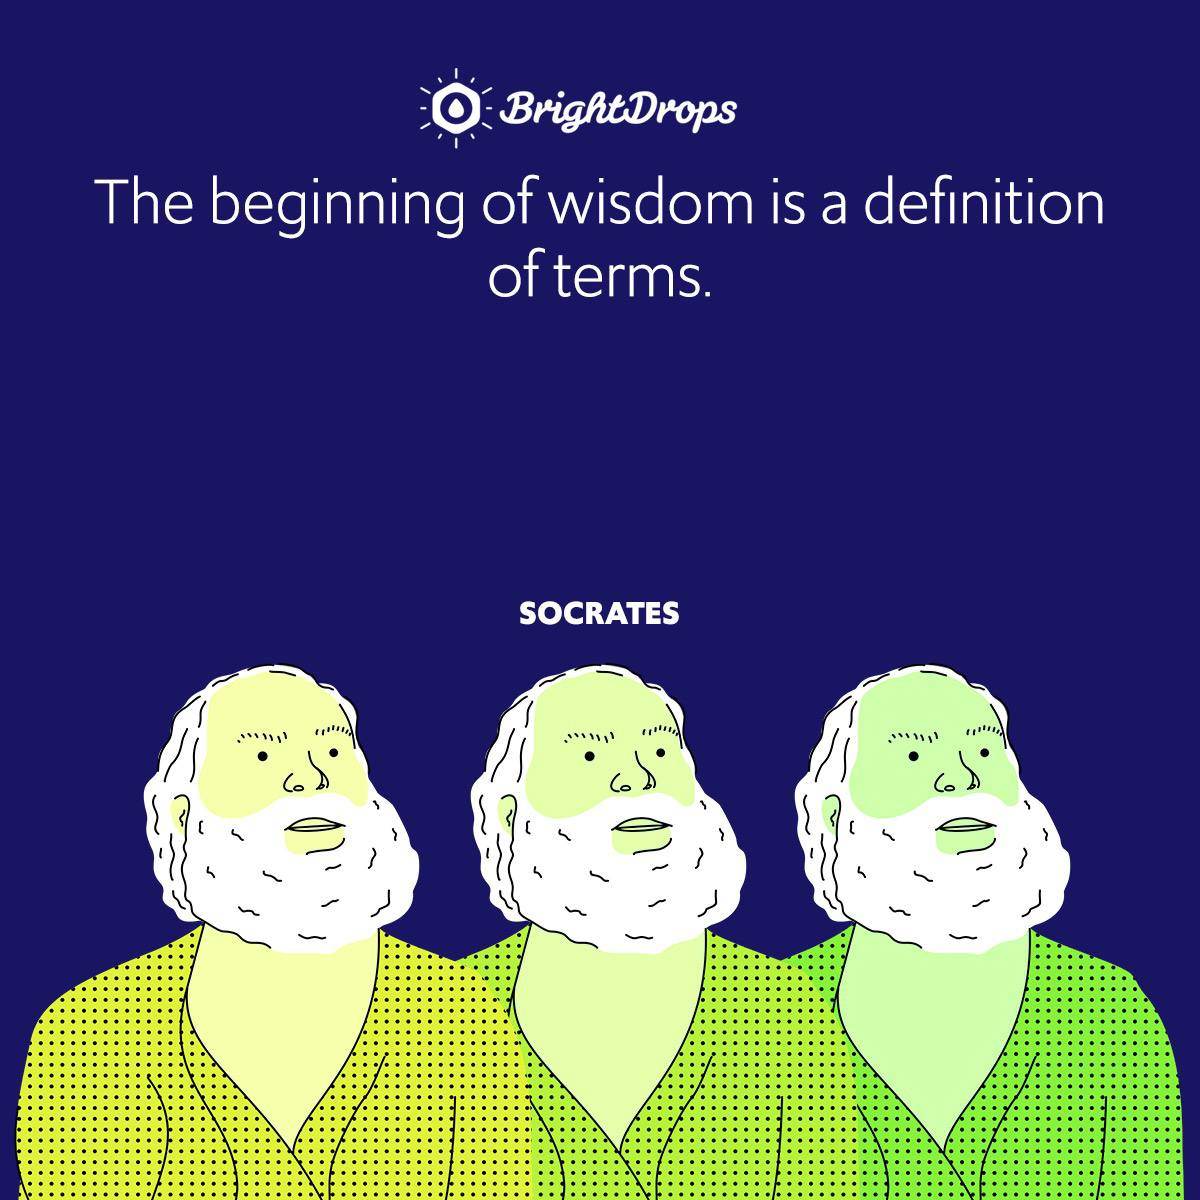 The beginning of wisdom is a definition of terms.